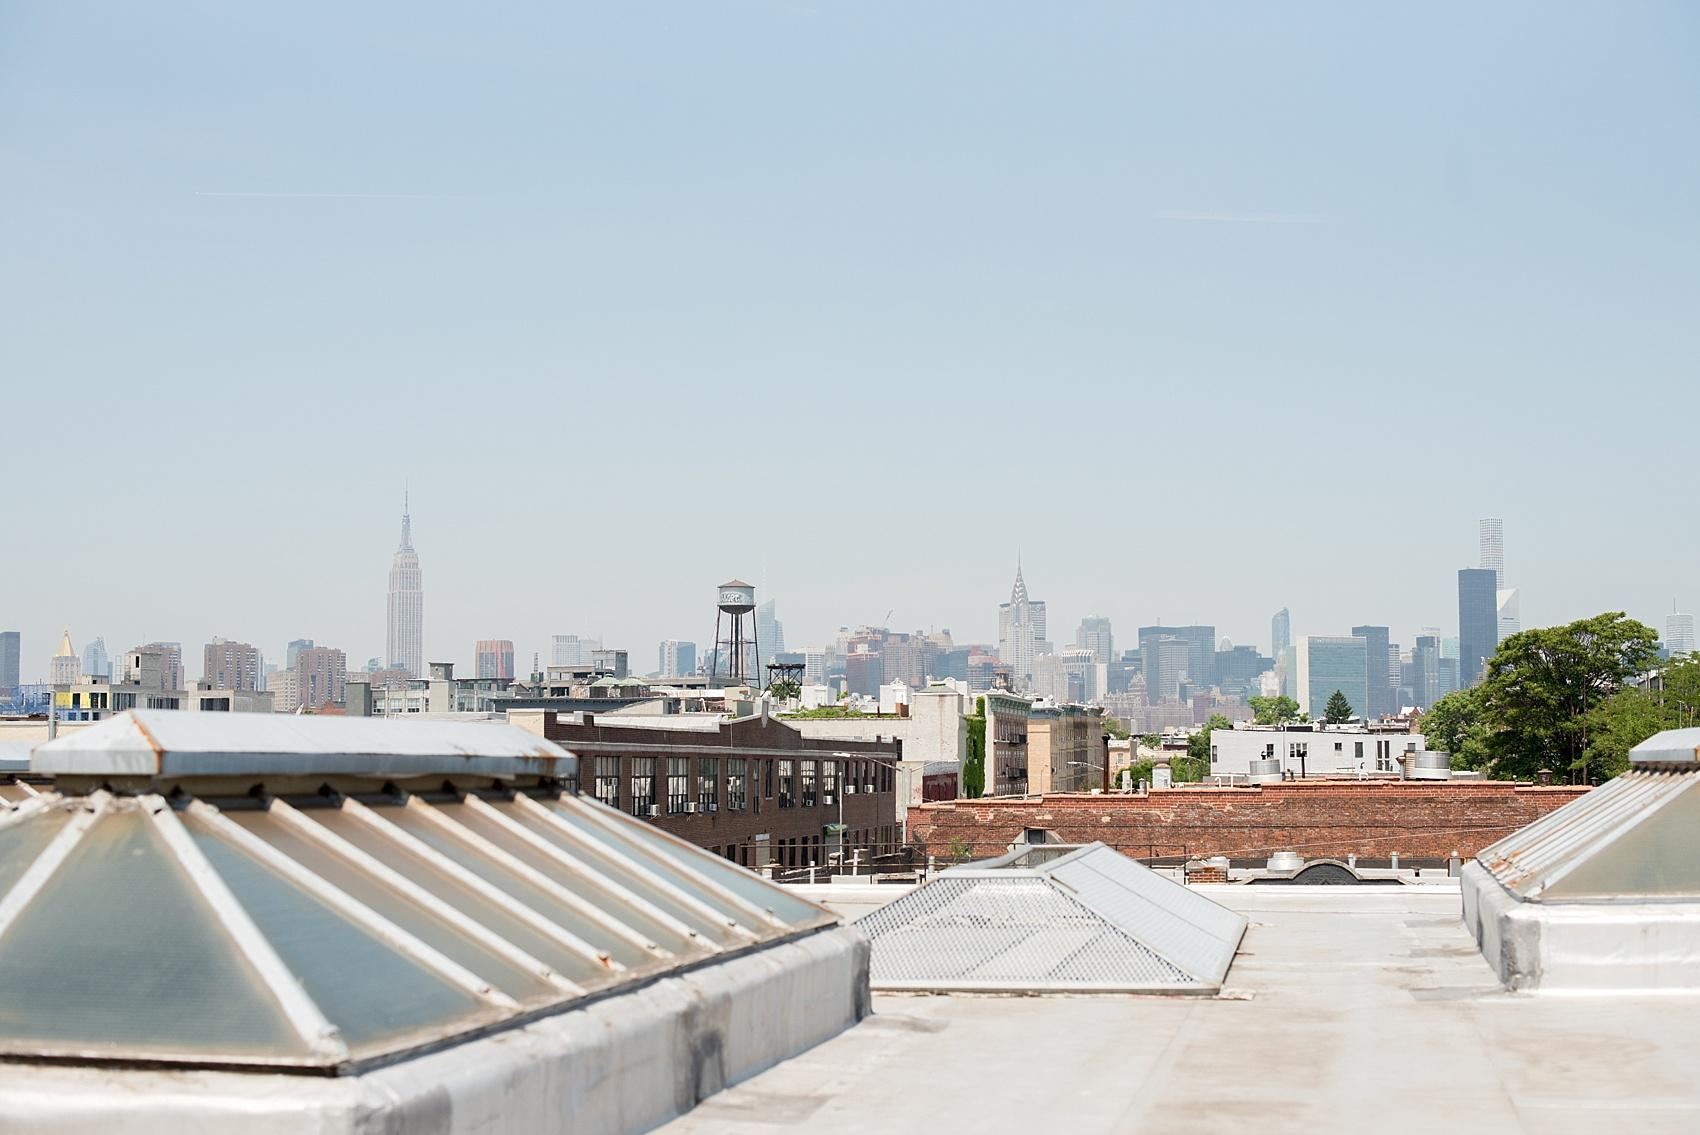 Mikkel Paige Photography, NYC wedding photographer, captures Brooklyn event space, Dobbin St. with NYC skyline view from the large rooftop.